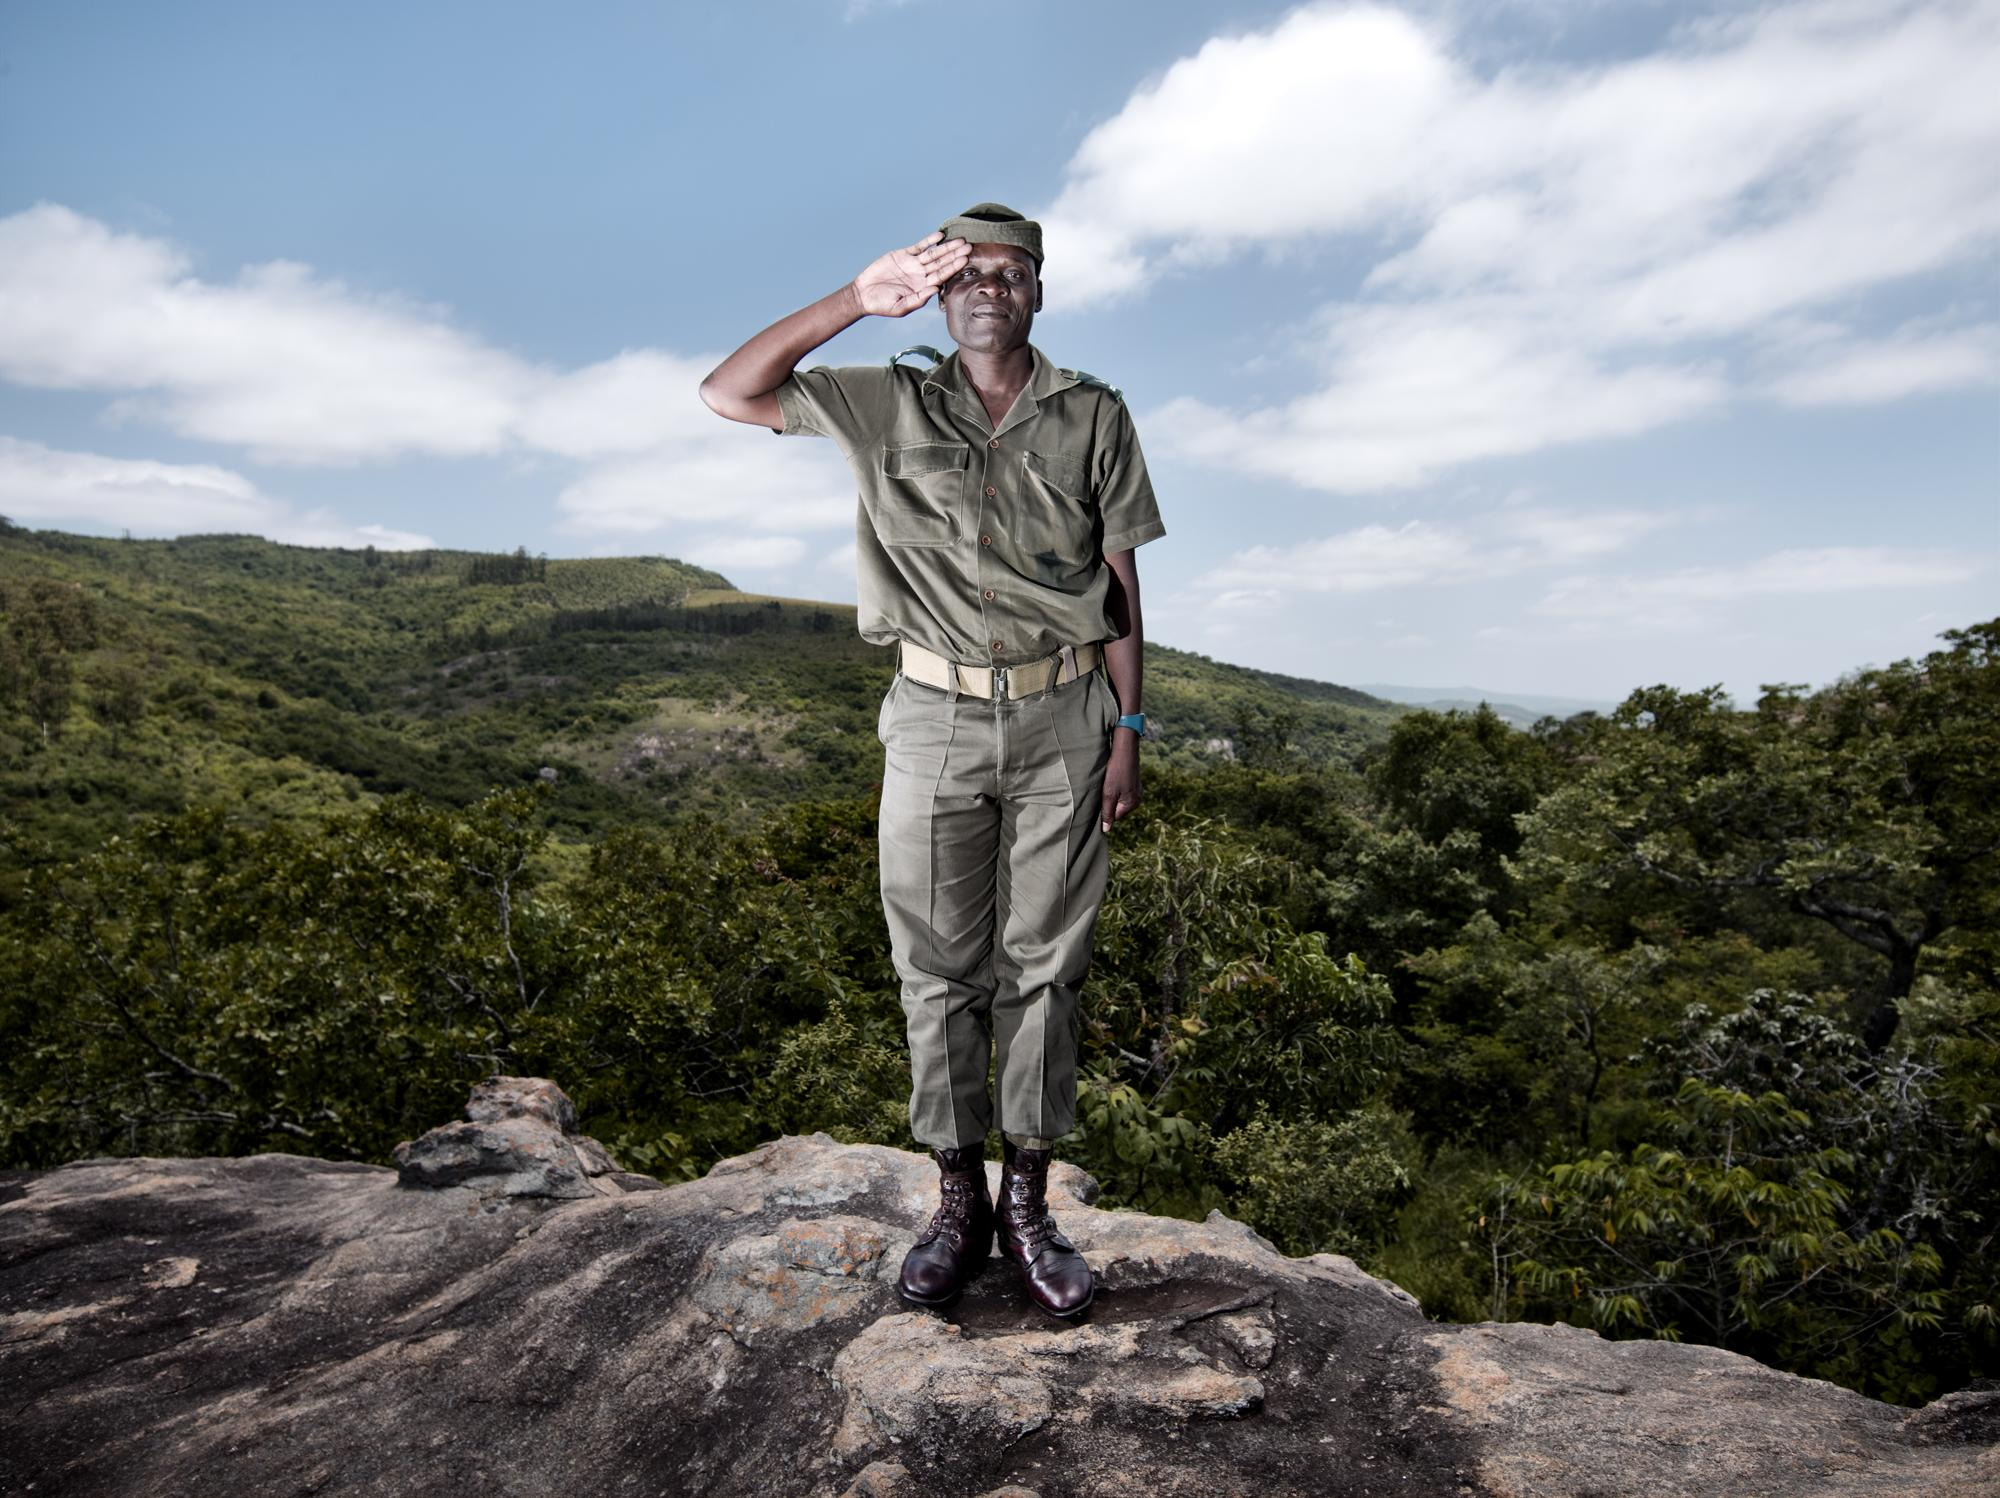 "Pep Bonet / Noor. November 2009. South Africa. ¨Remarkable South Africans"" Sergeant Albert Maluleke. A field ranger sergeant working in the Kruger National Park, one of Africa's largest game reserves. He has dedicated more than 20 years of service to conservation,."